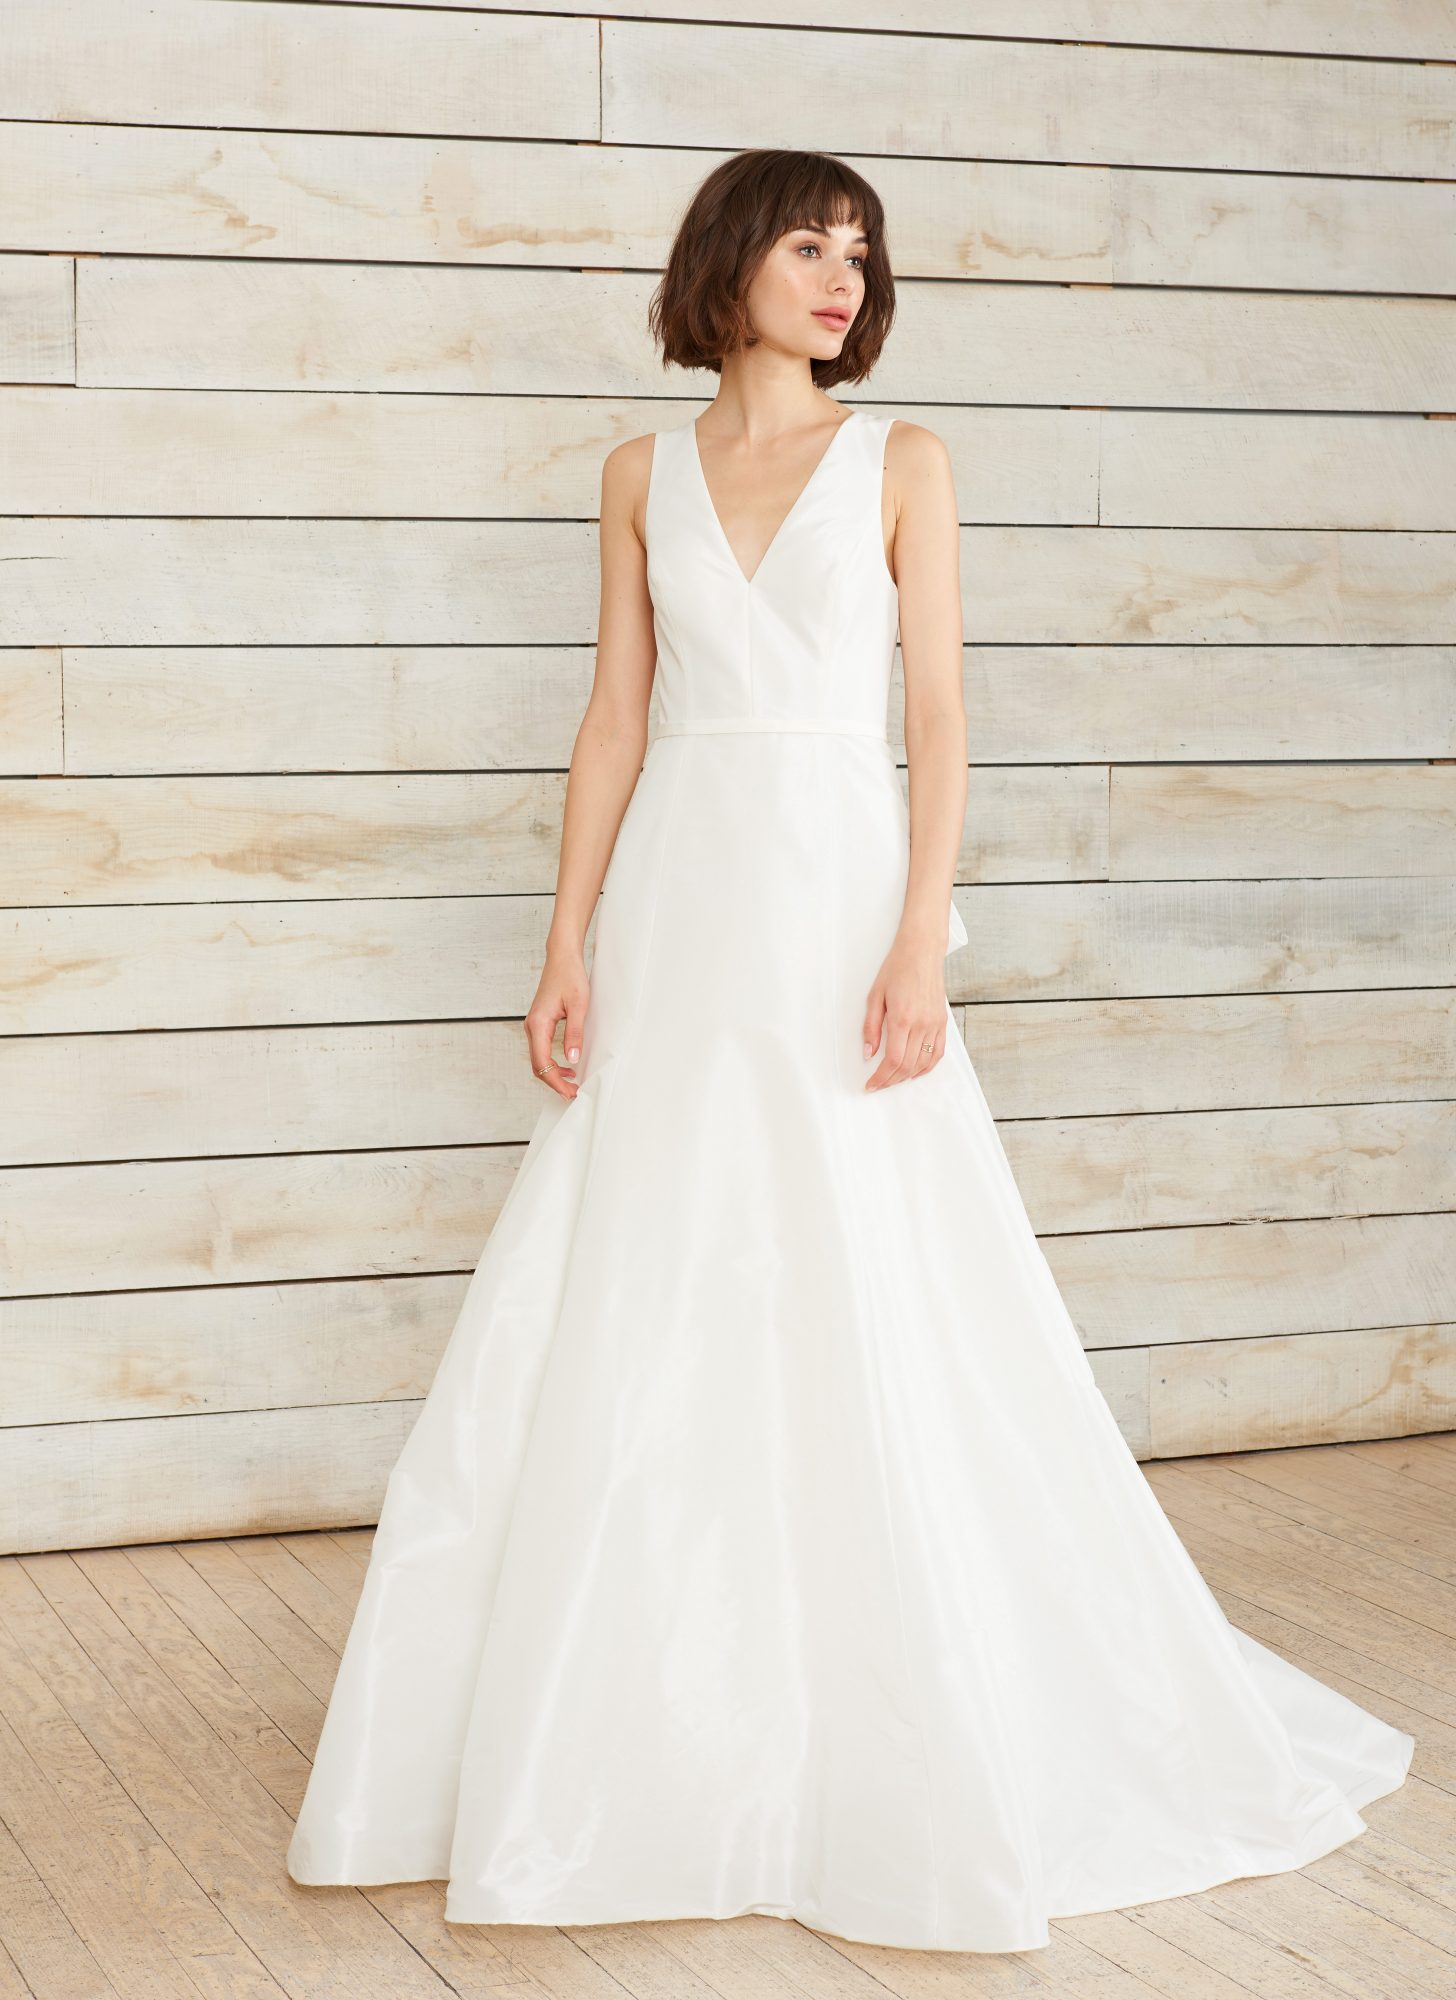 nouvelle amsale v-neck a-line wedding dress spring 2018